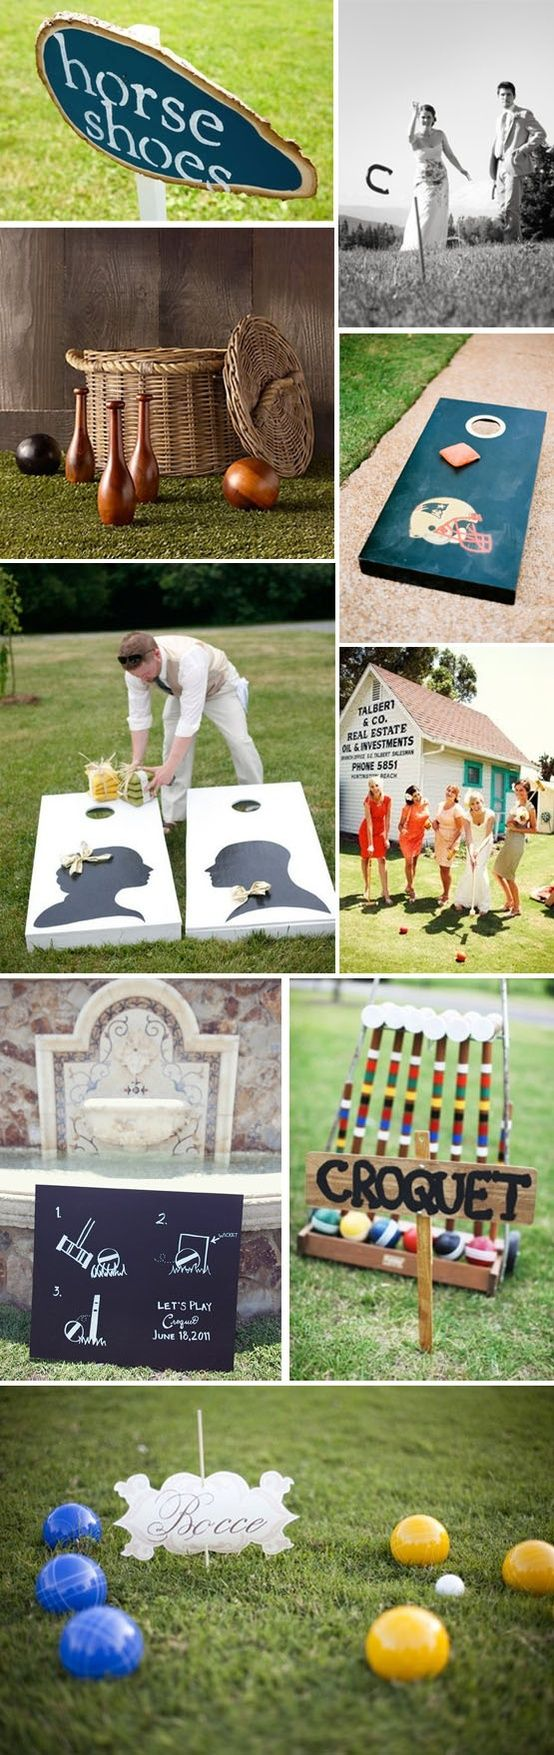 Outdoor games for Rach's couples shower ... omg I love the cornholes!!!!!!!!!!!!!!!!!11